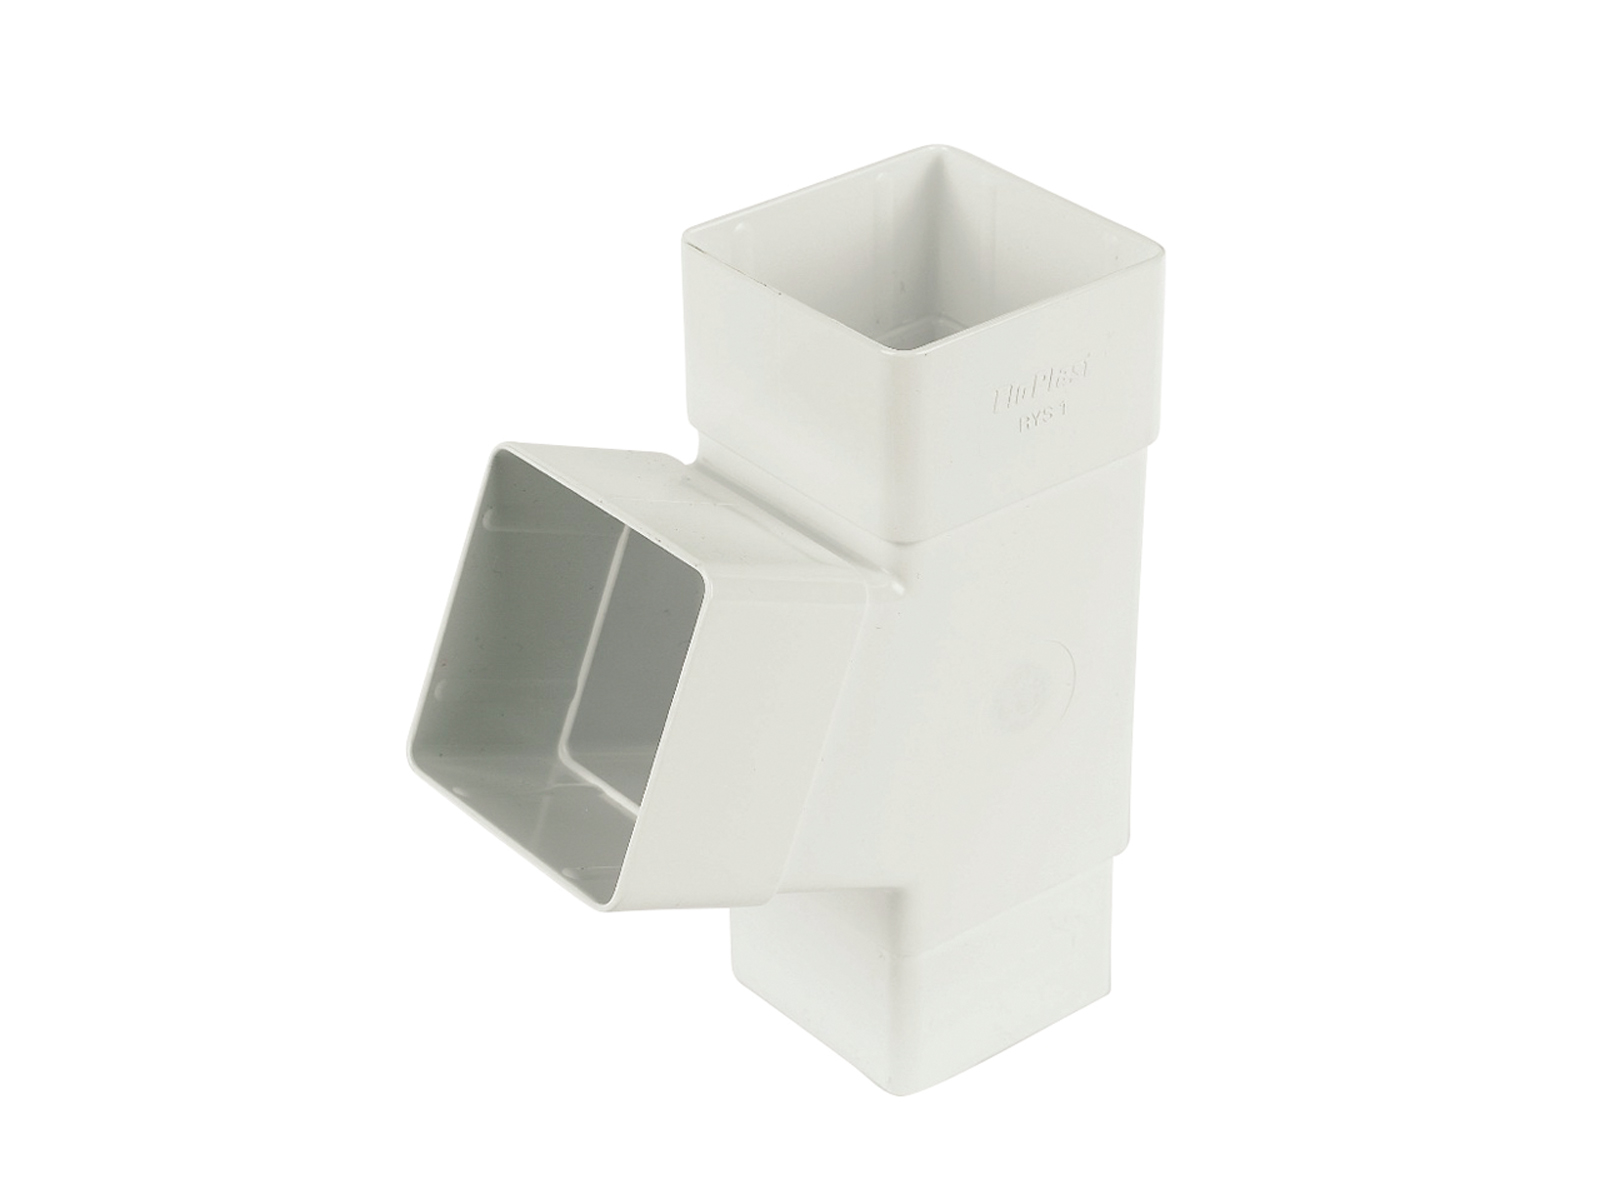 FLOPLAST 65MM SQUARE DOWNPIPE - RYS1 67.5* BRANCH - WHITE